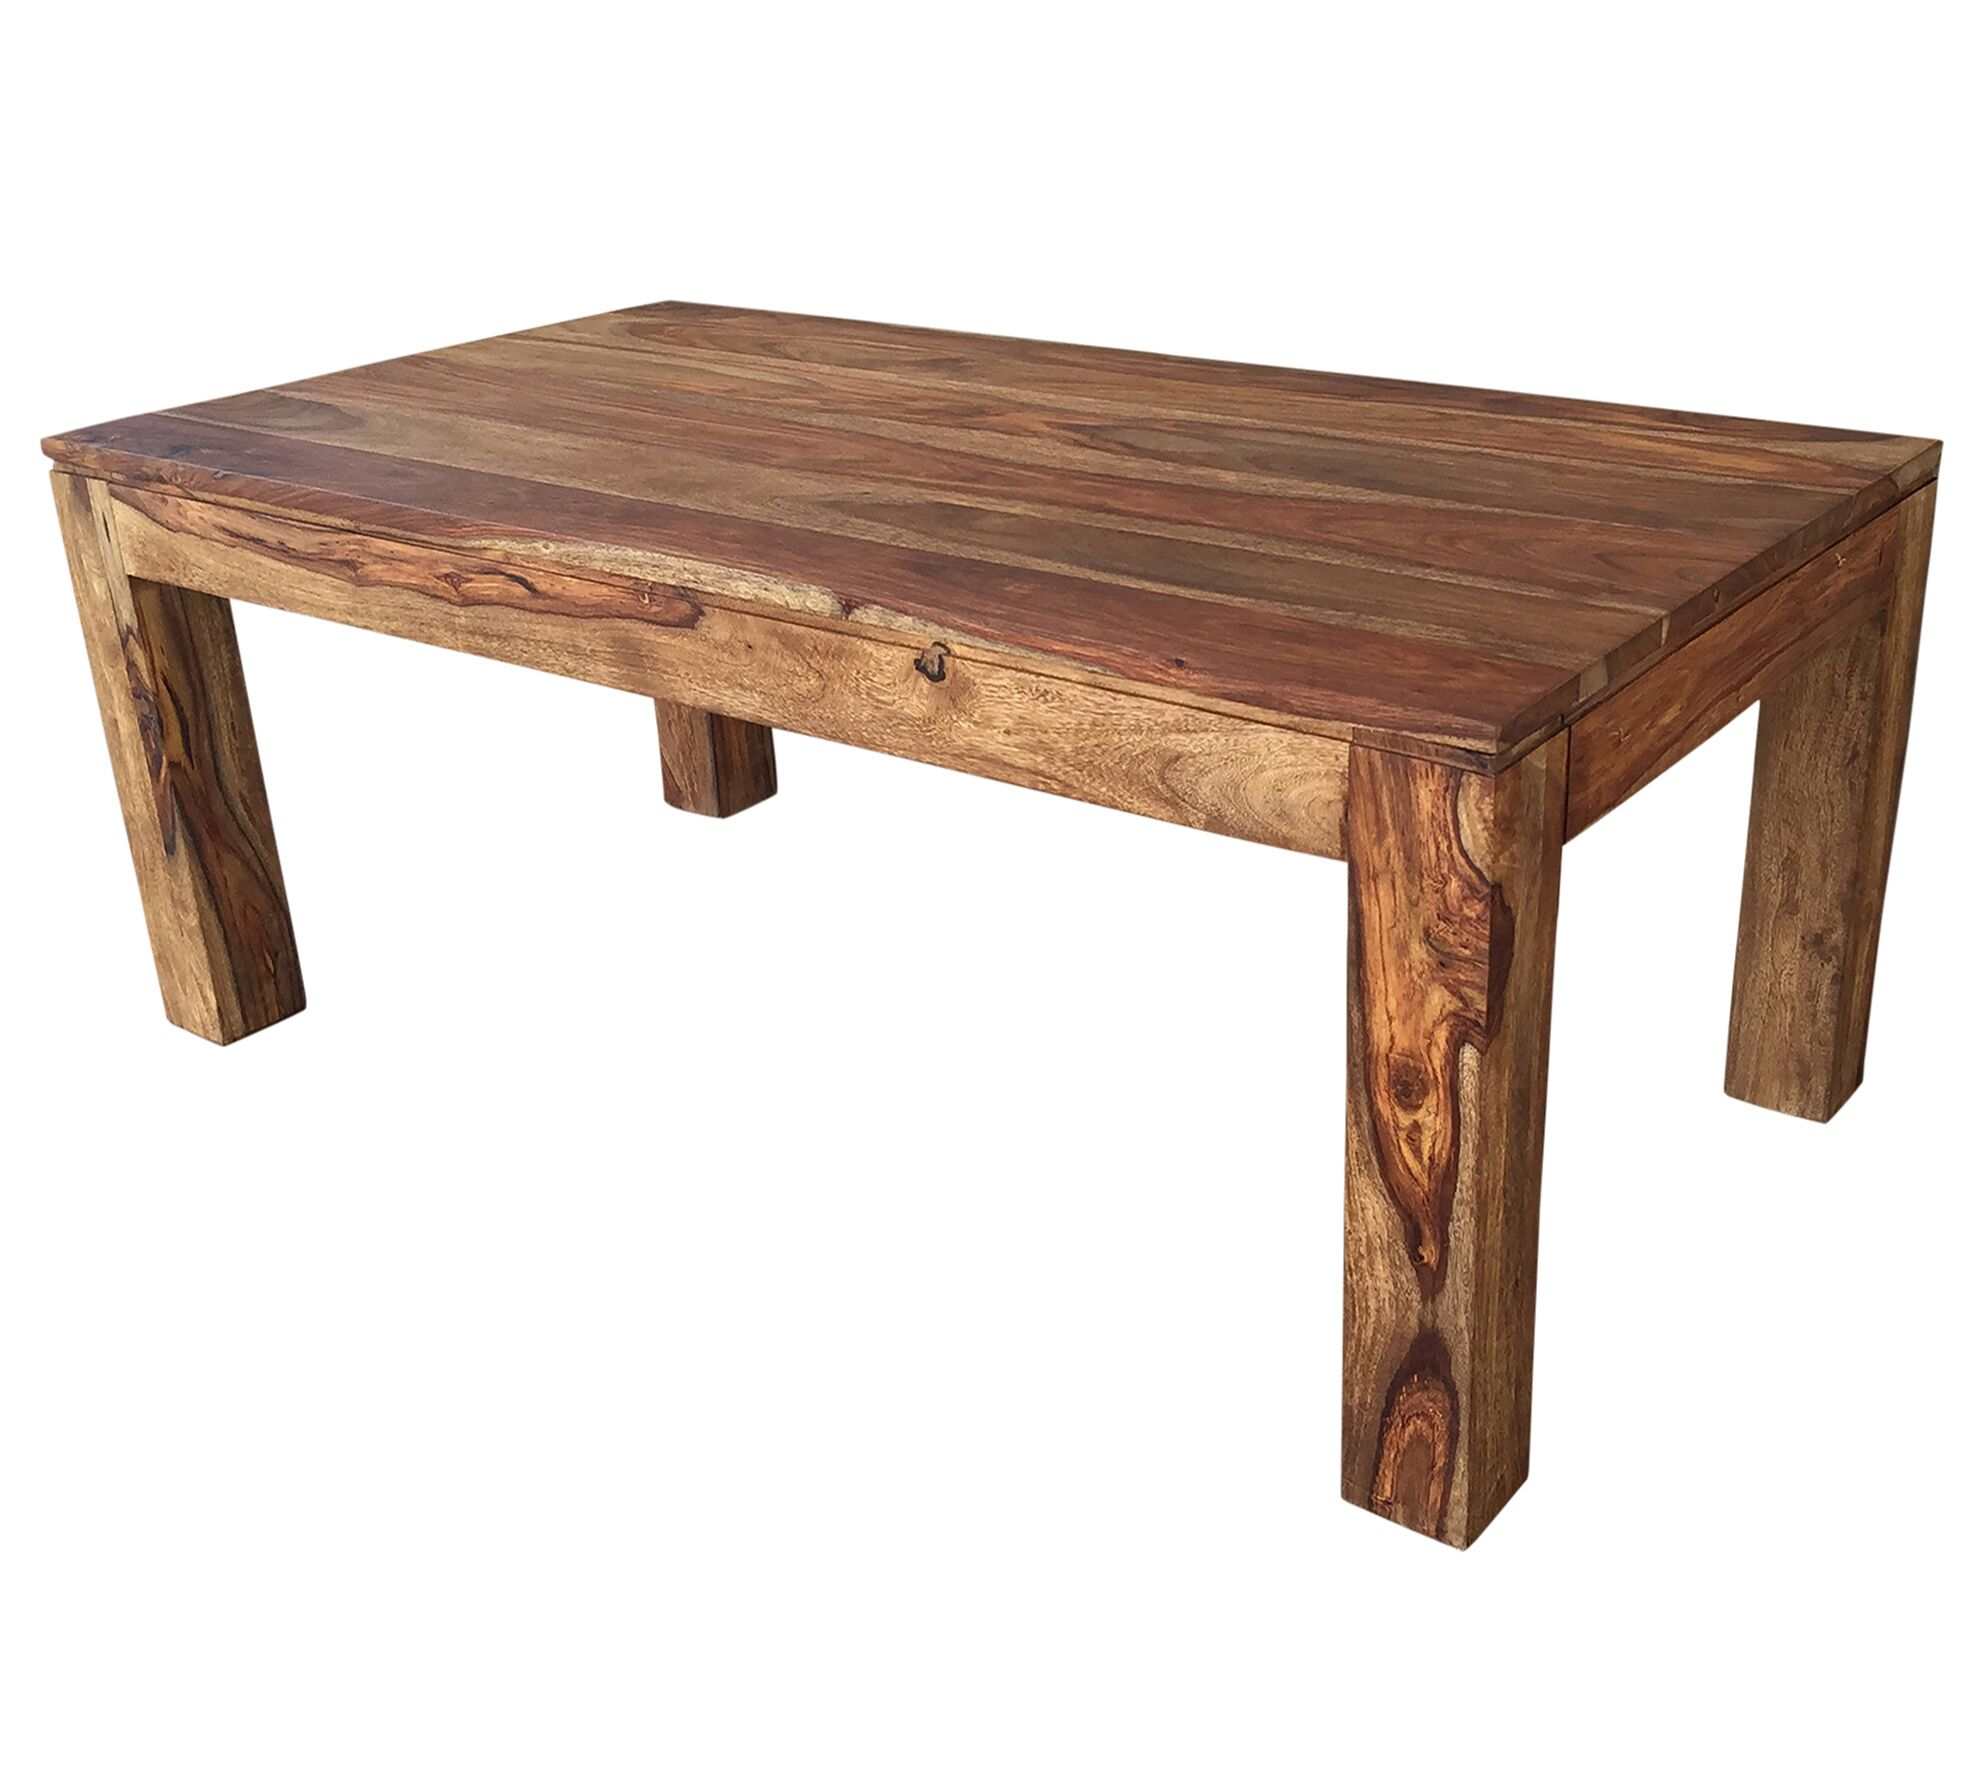 Coffee Table Color: Natural